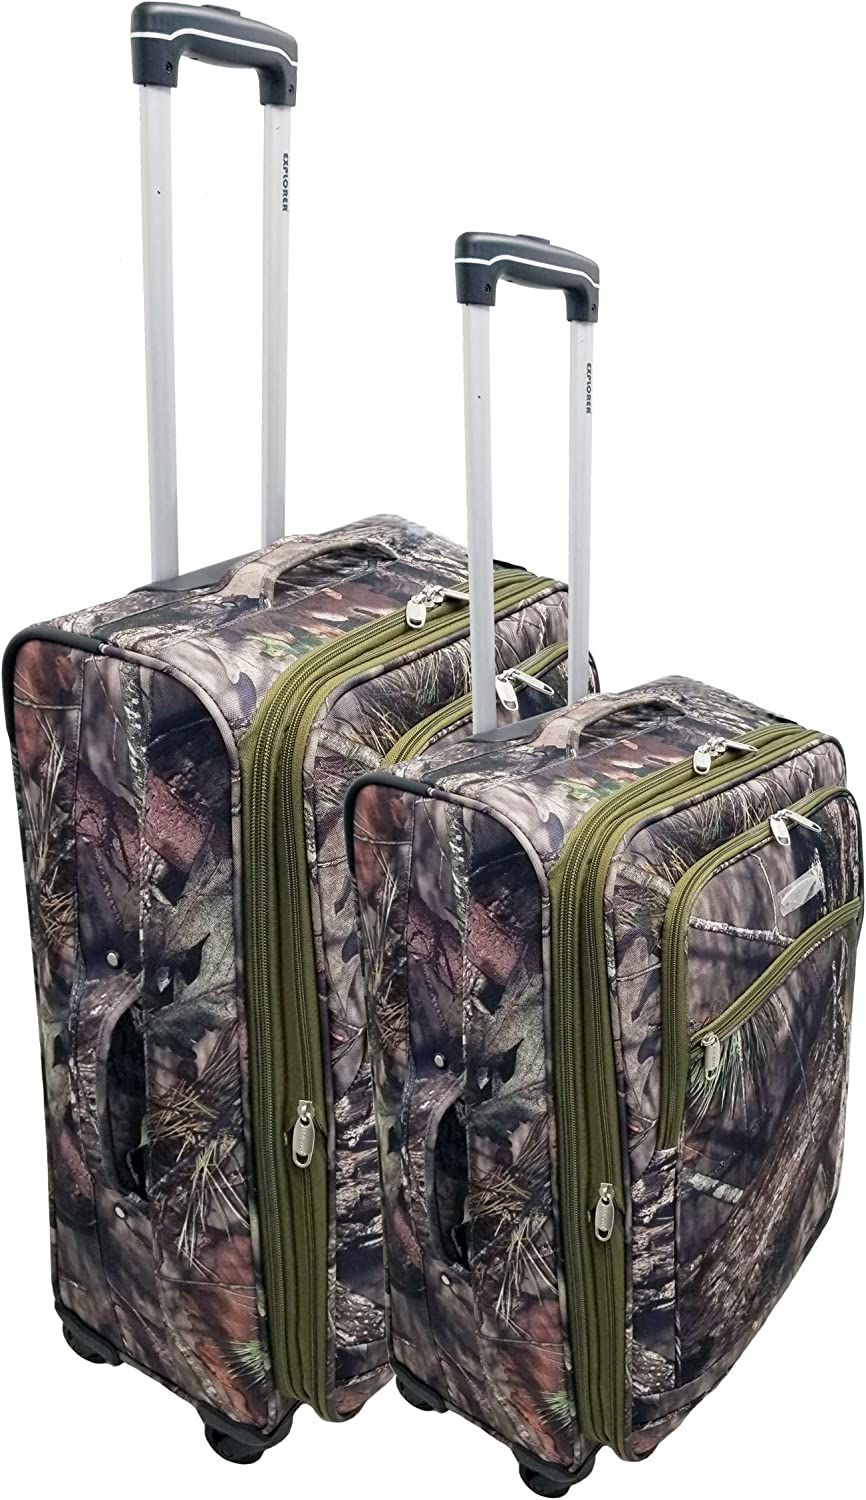 Explorer Mossy Oak Realtree Like Tactical Hunting Camo Heavy Duty Duffel Bag Luggage Travel Gear for Huniting Outdoor Police Security Every Day Use